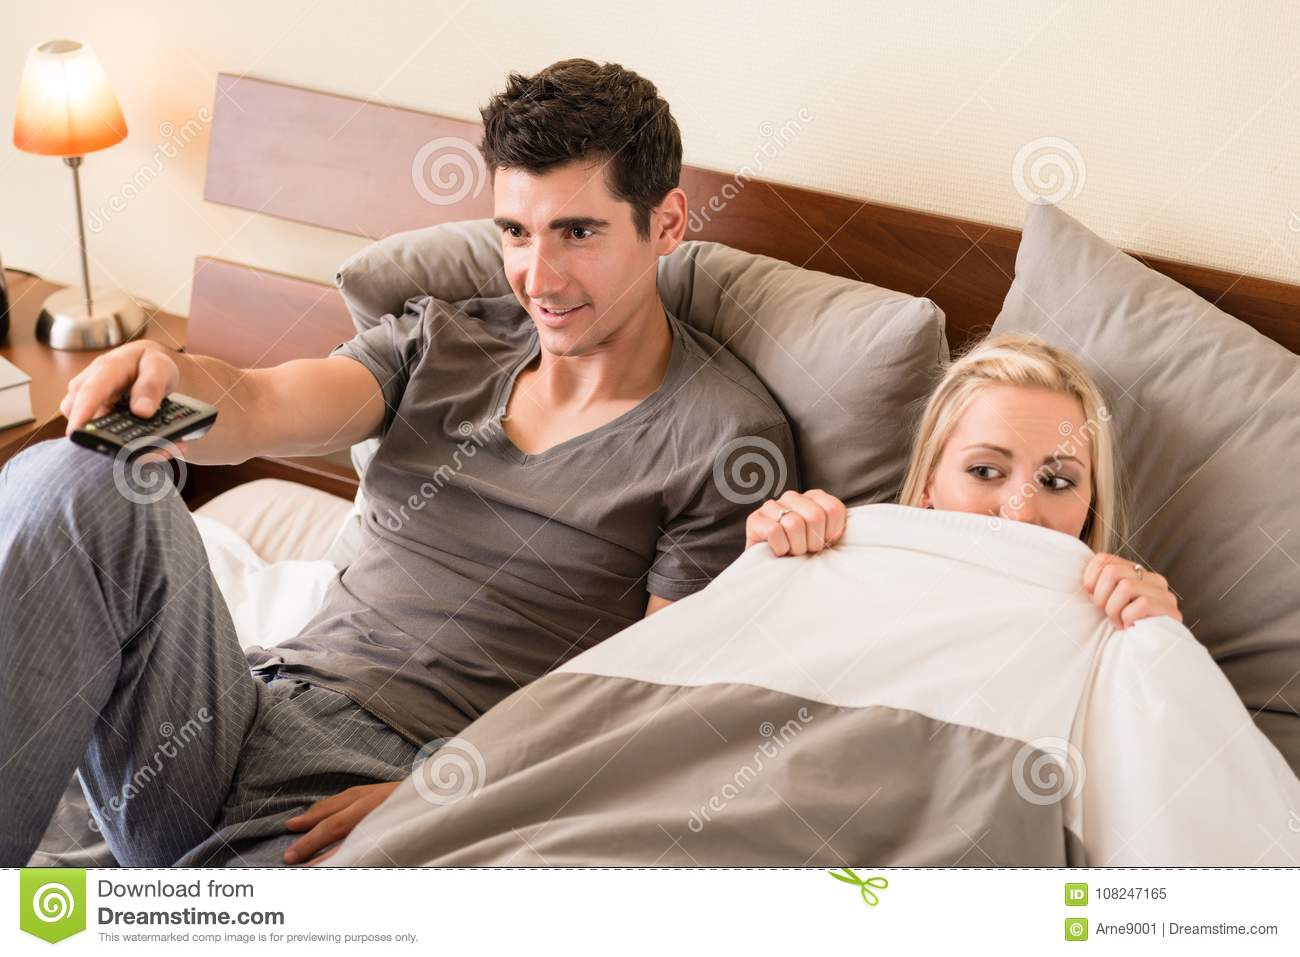 Couple sitting in bed while watching TV